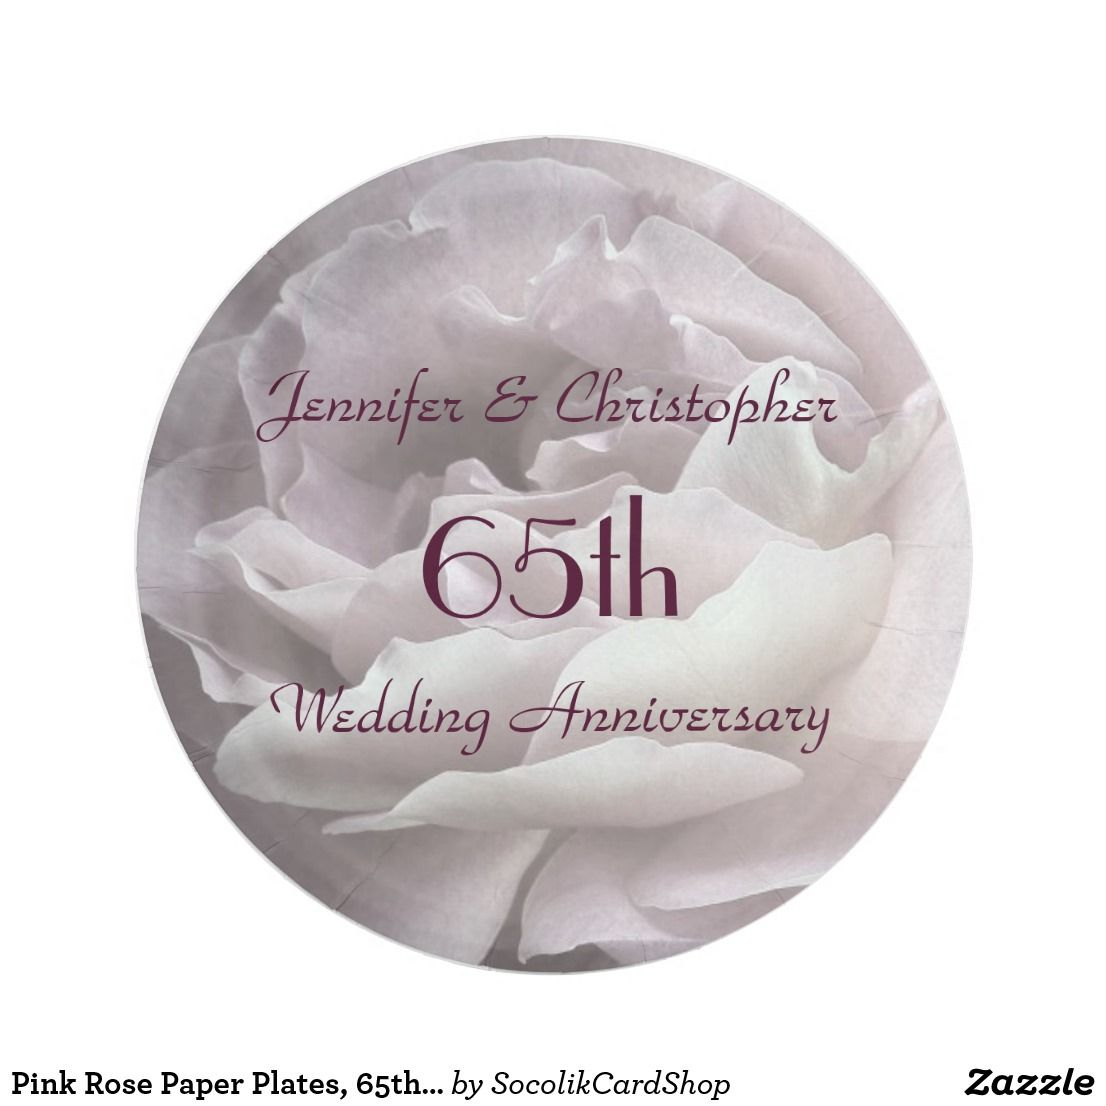 Shop Pink Rose Paper Plates Wedding Anniversary Paper Plate created by SocolikCardShop.  sc 1 st  Pinterest & Pink Rose Paper Plates 65th Wedding Anniversary | Custom Plates ...